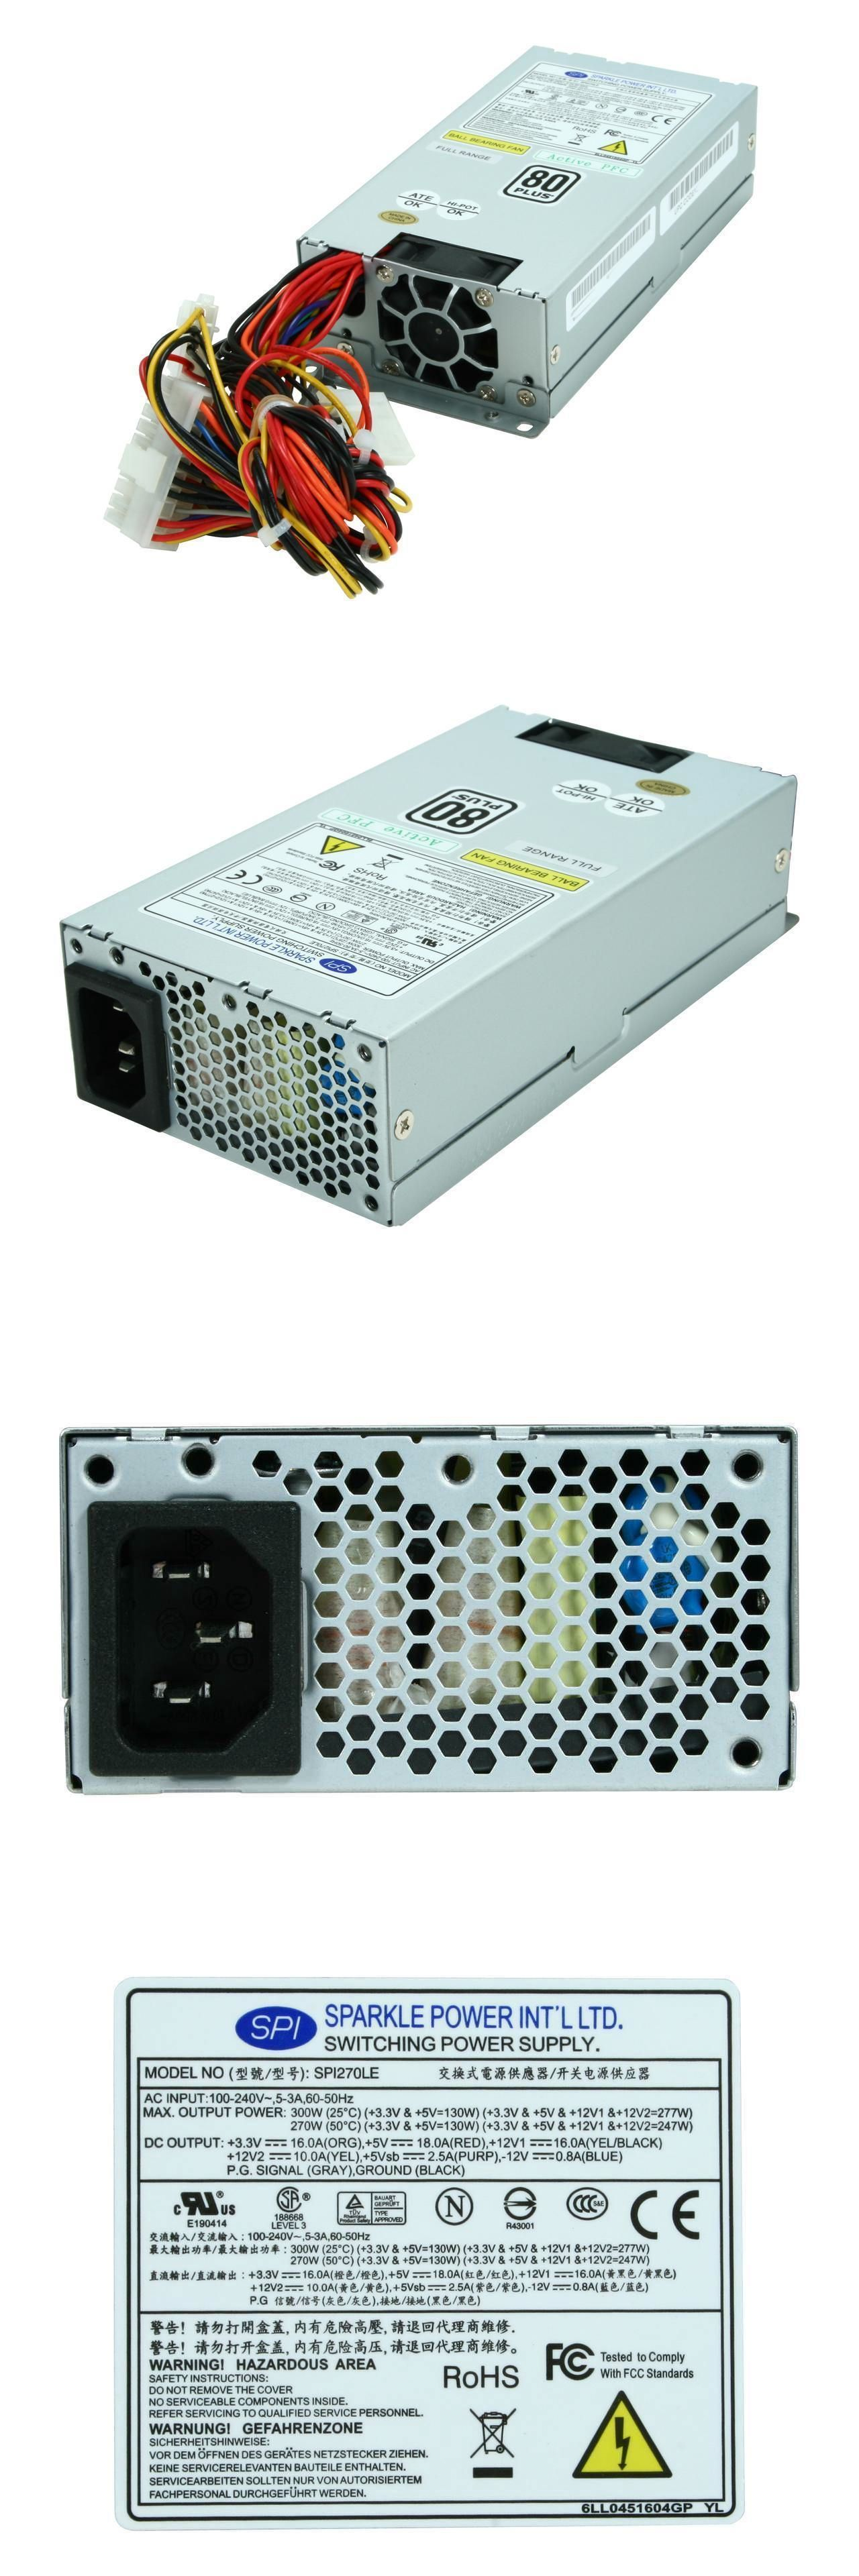 Server Power Supplies 56090 Sparkle Spi270le 80 270w Single Flex Atx Power Supply Buy It Now Only 26 08 On Ebay Server Power Power Atx Power Supply